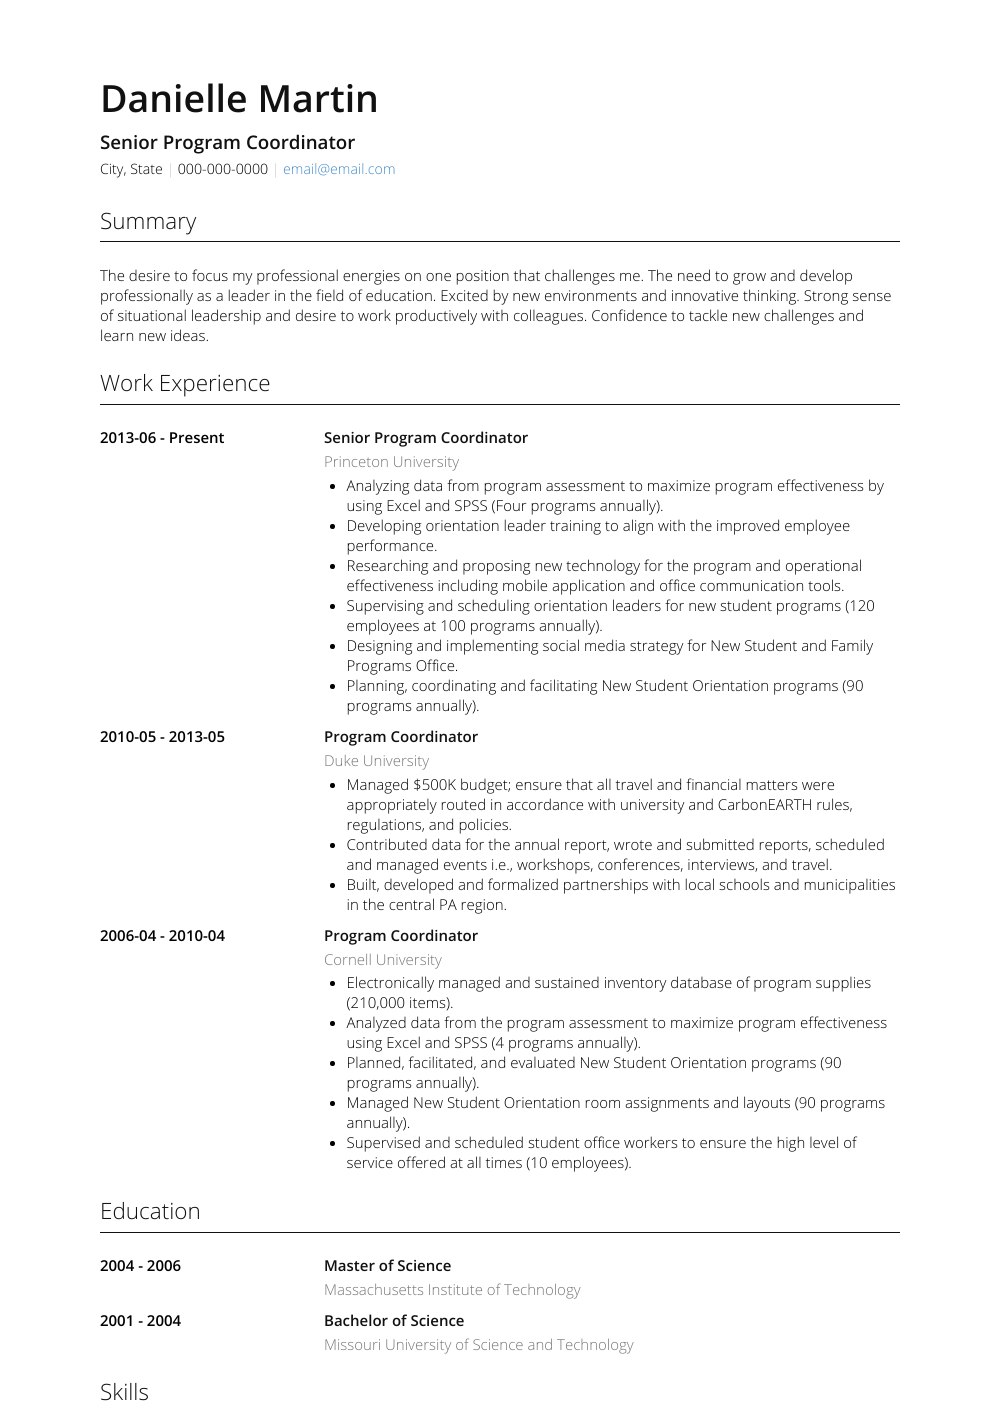 Senior Program Coordinator View Sample